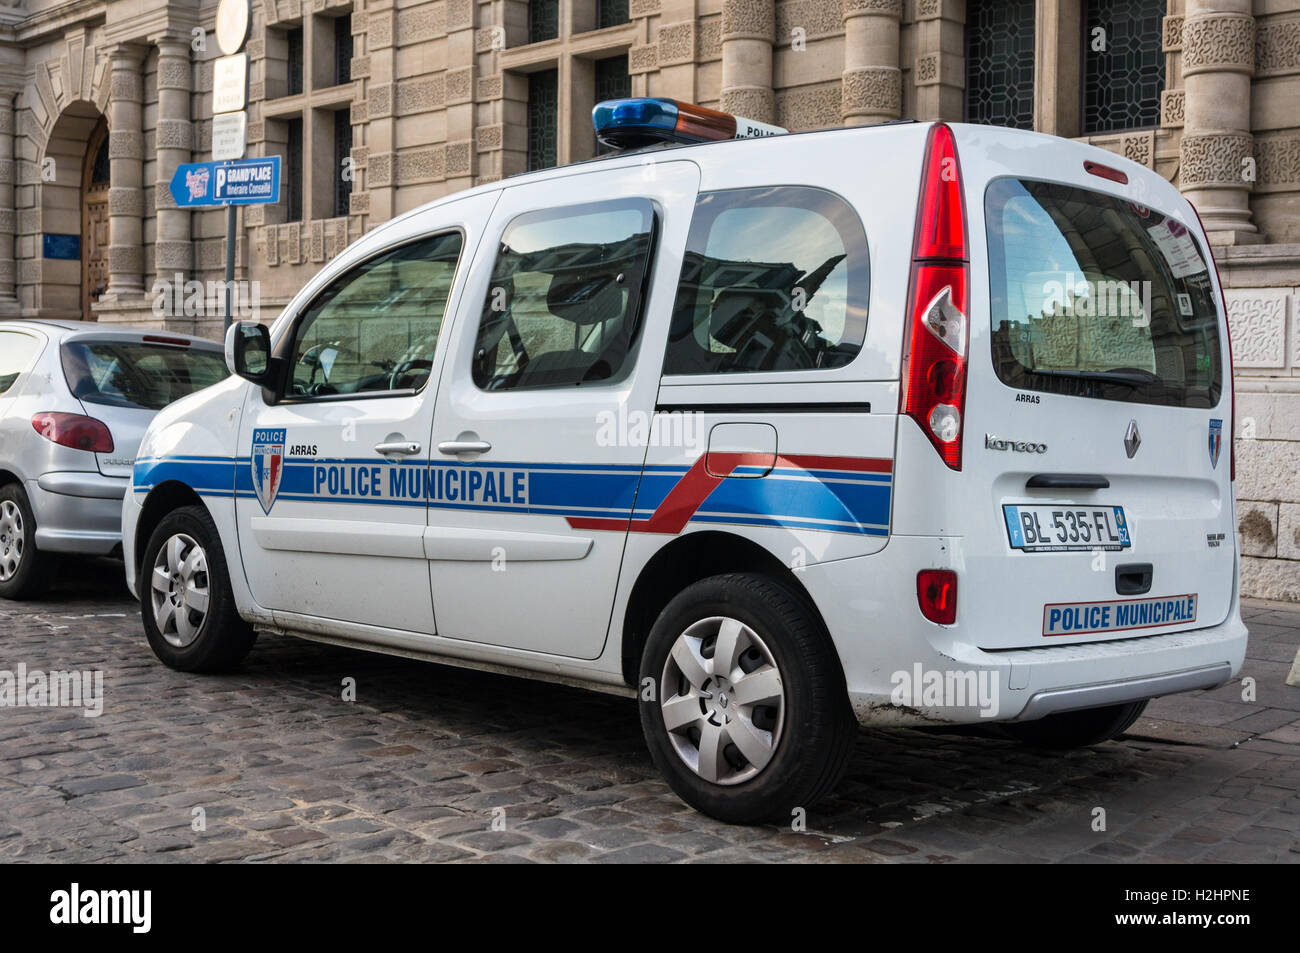 municipal police renault kangoo van outside h tel de ville arras stock photo royalty free. Black Bedroom Furniture Sets. Home Design Ideas